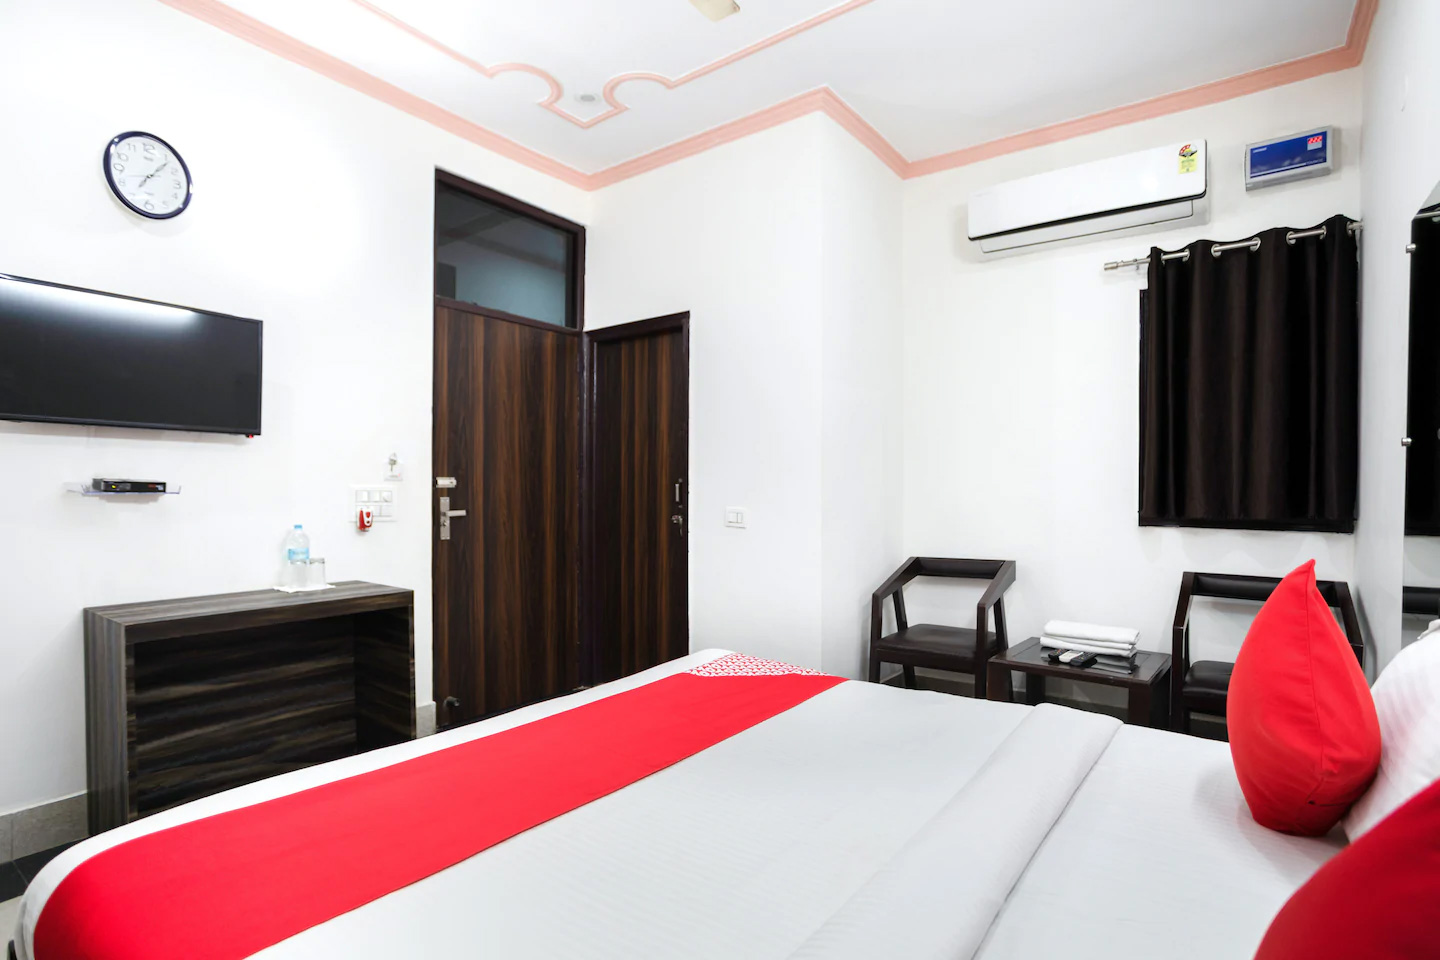 Guest house in Gurgaon, guest house near medanta medicity, Budget guest house in Gurgaon Delhi NCR